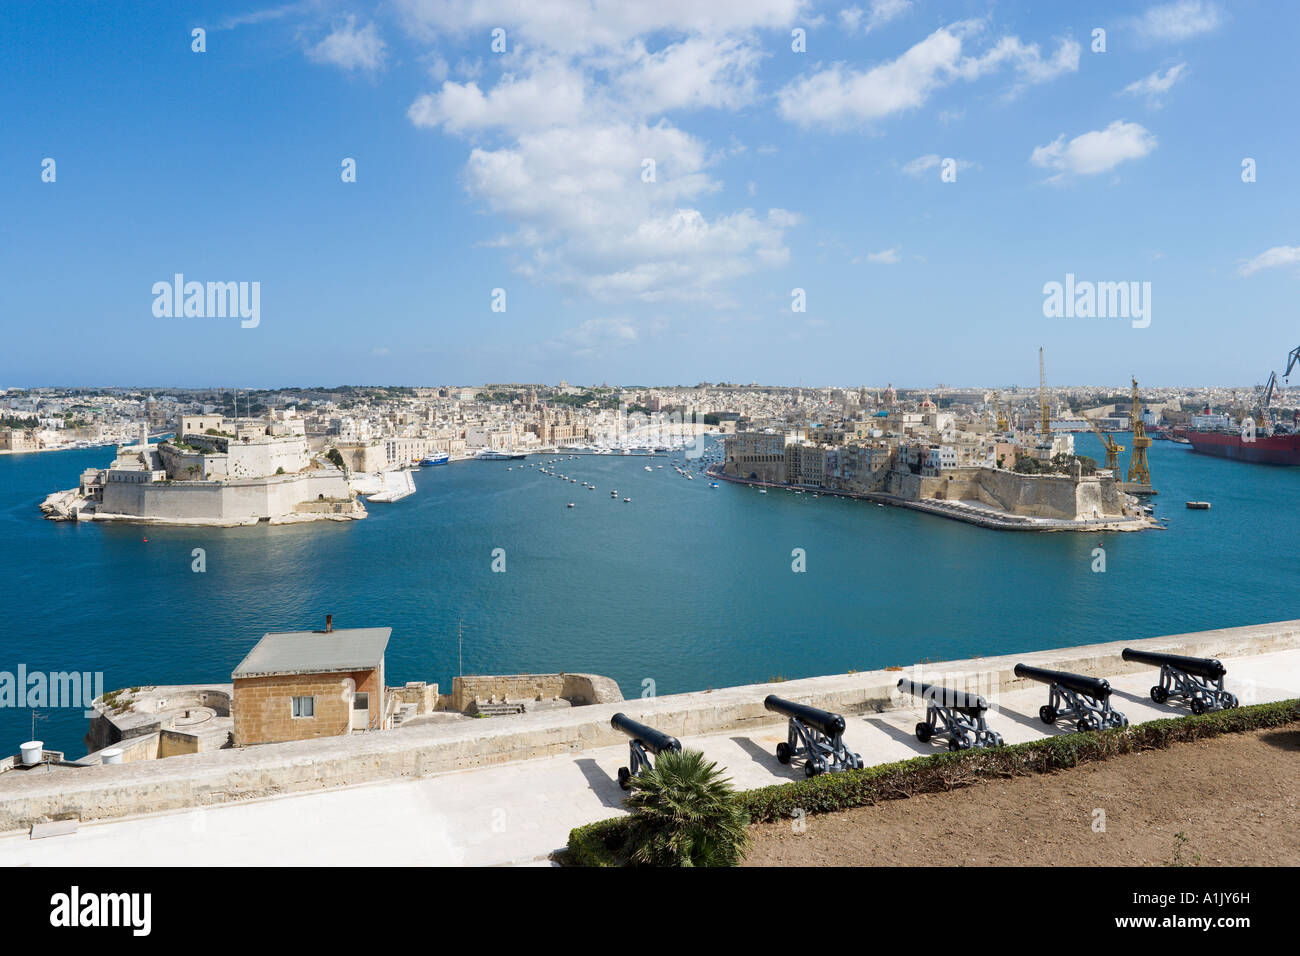 View over Grand Harbour, Vittoriosa and Fort St Angelo from Upper Barracca Gardens, Valletta, Malta - Stock Image